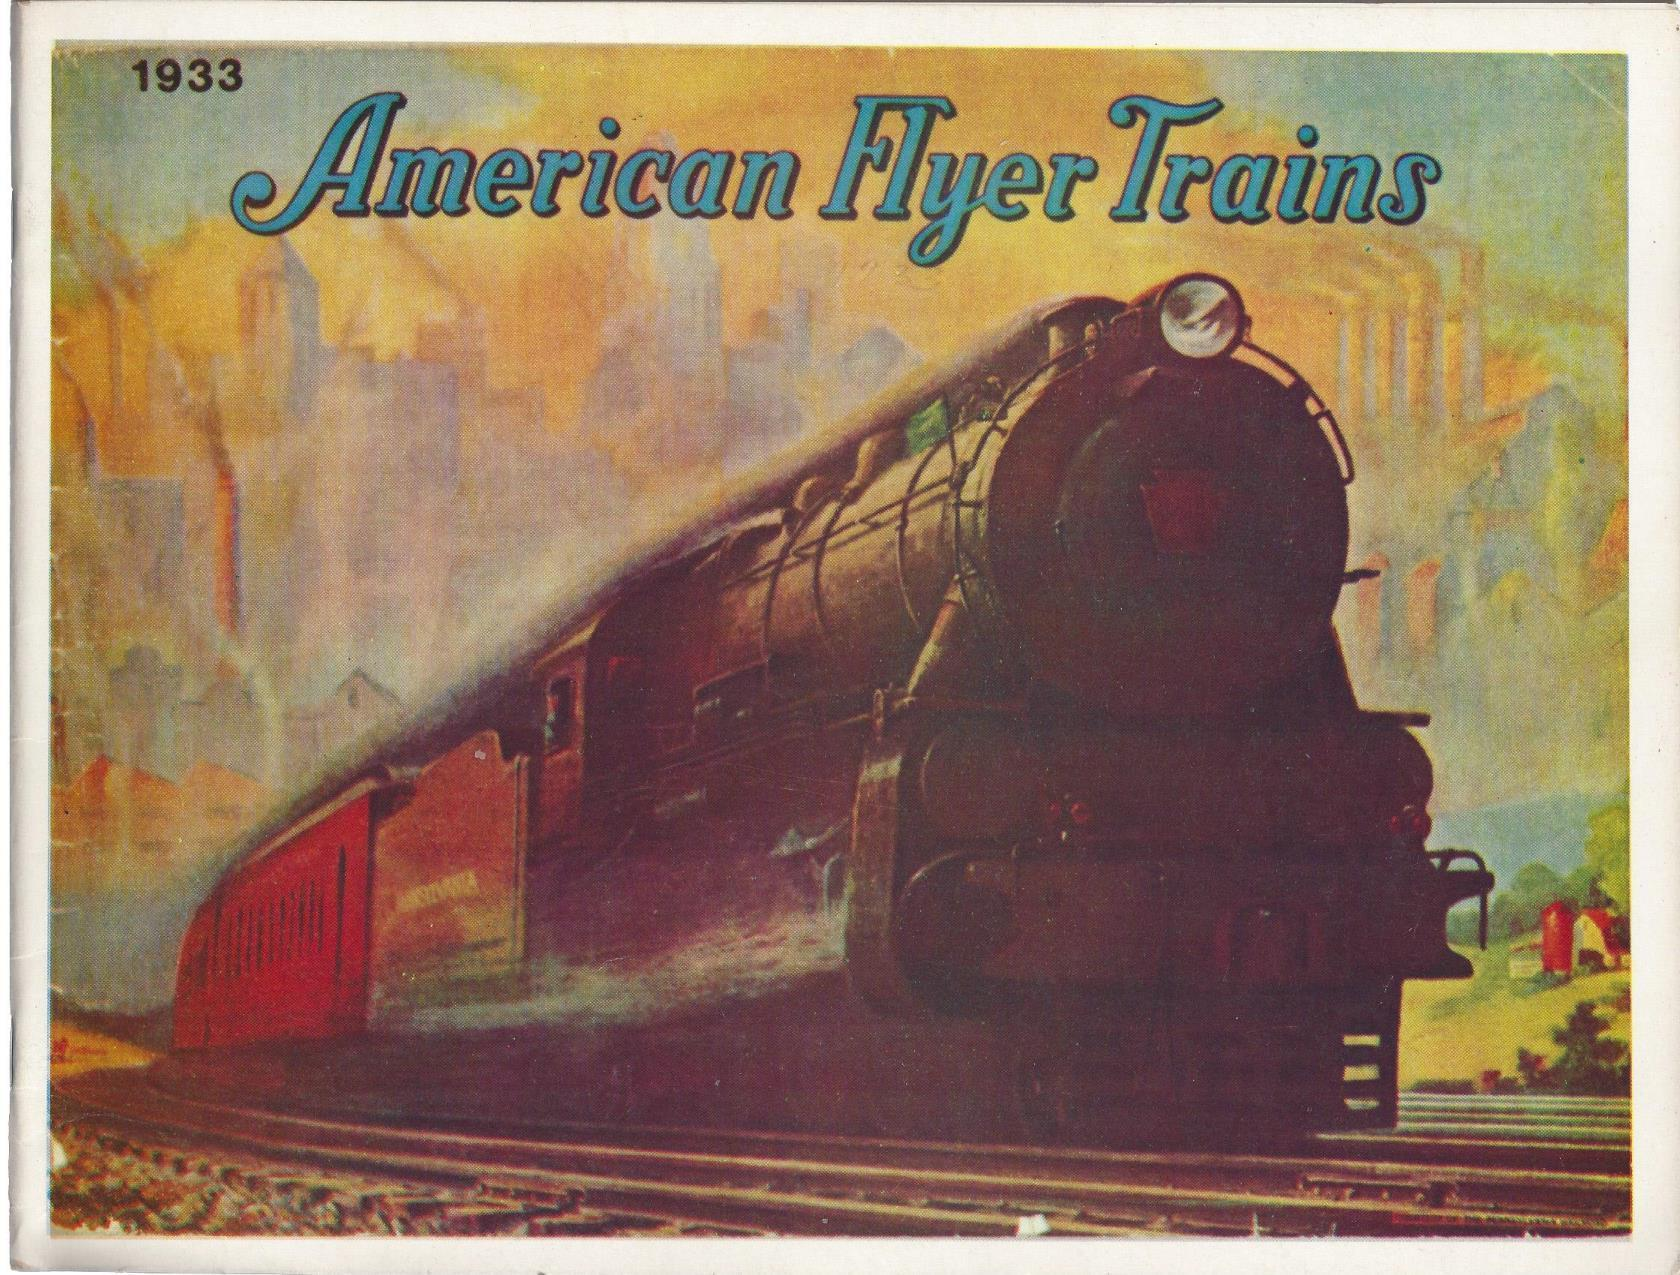 American Flyer Trains 1933 (1975 Reproduction), Bruce C. Greenberg